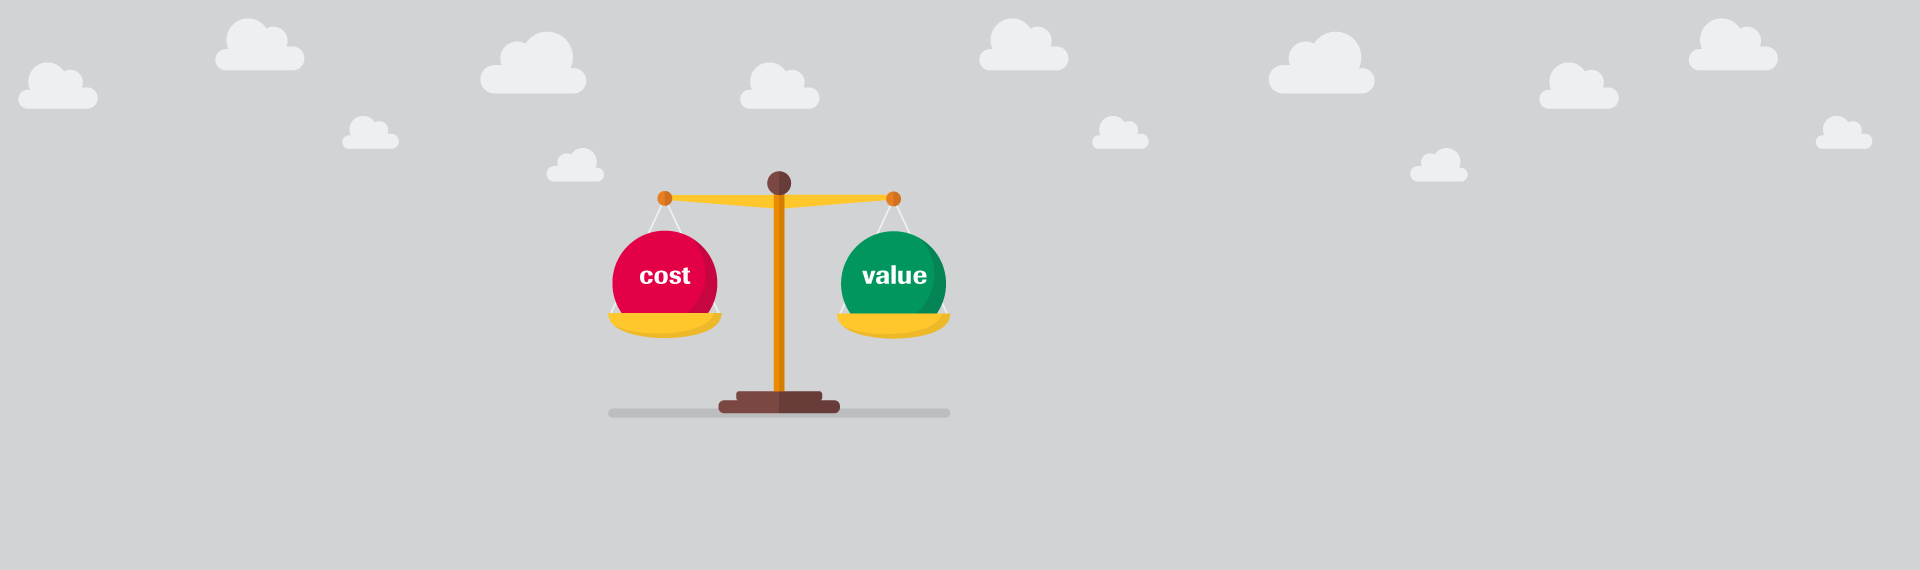 Balanced scale of cost versus value